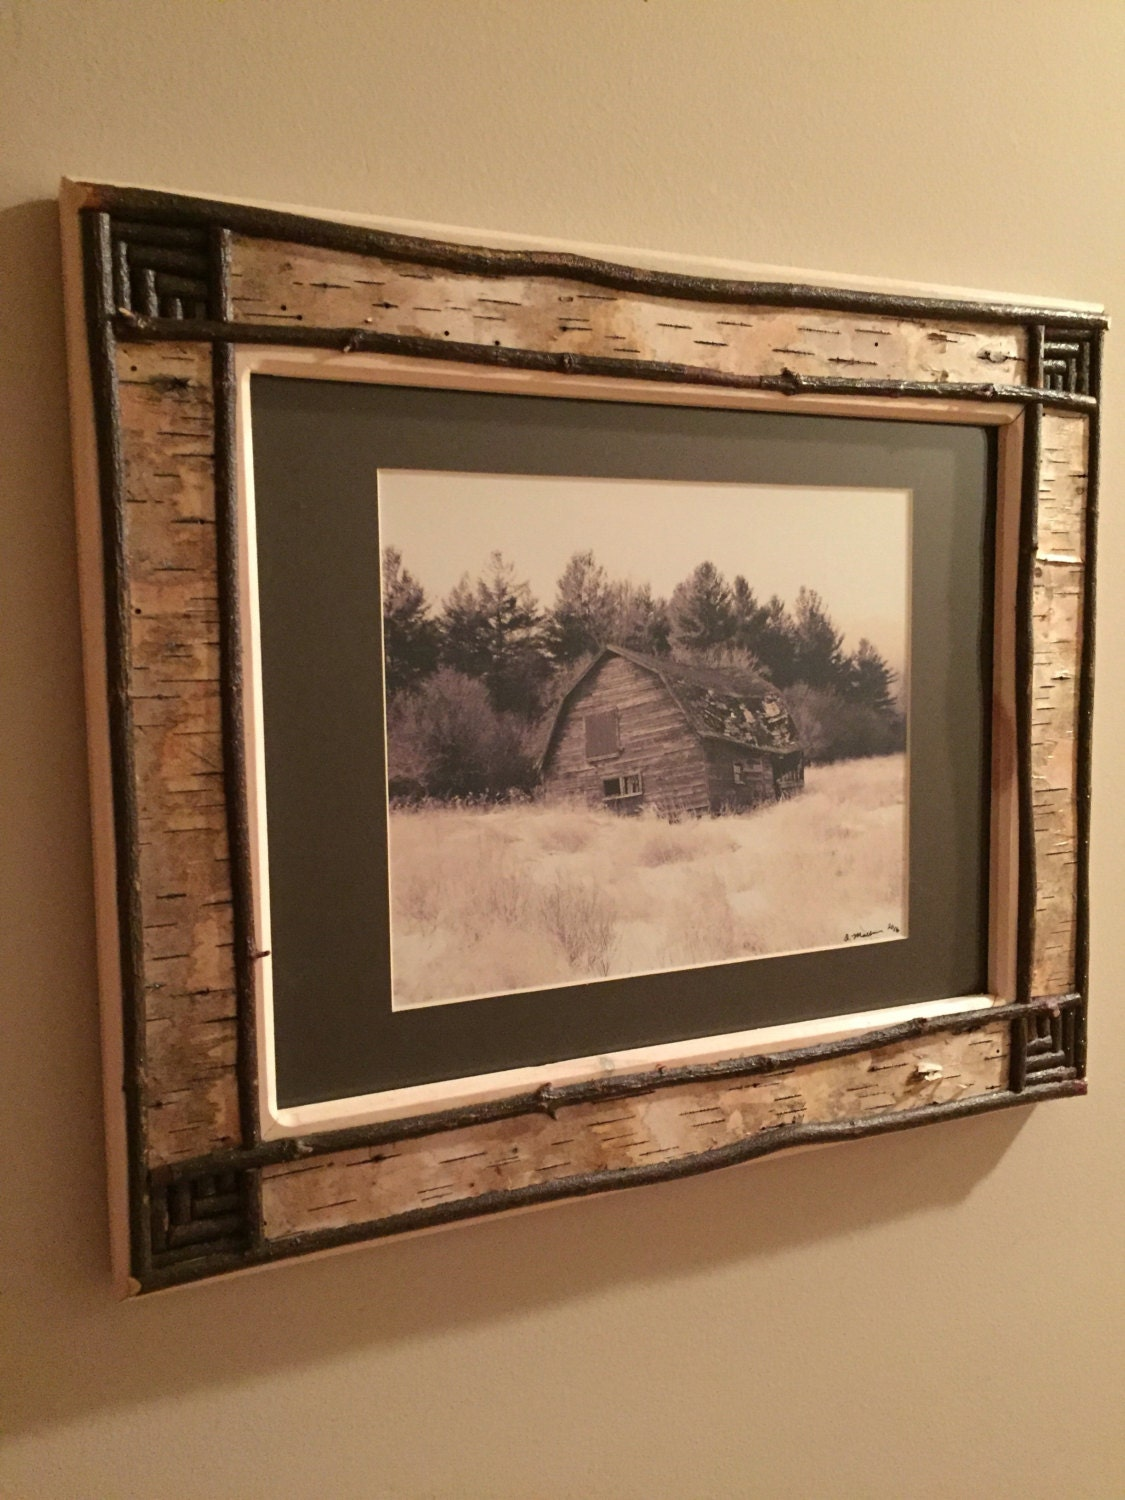 Handcrafted adirondack white birch bark picture frame that